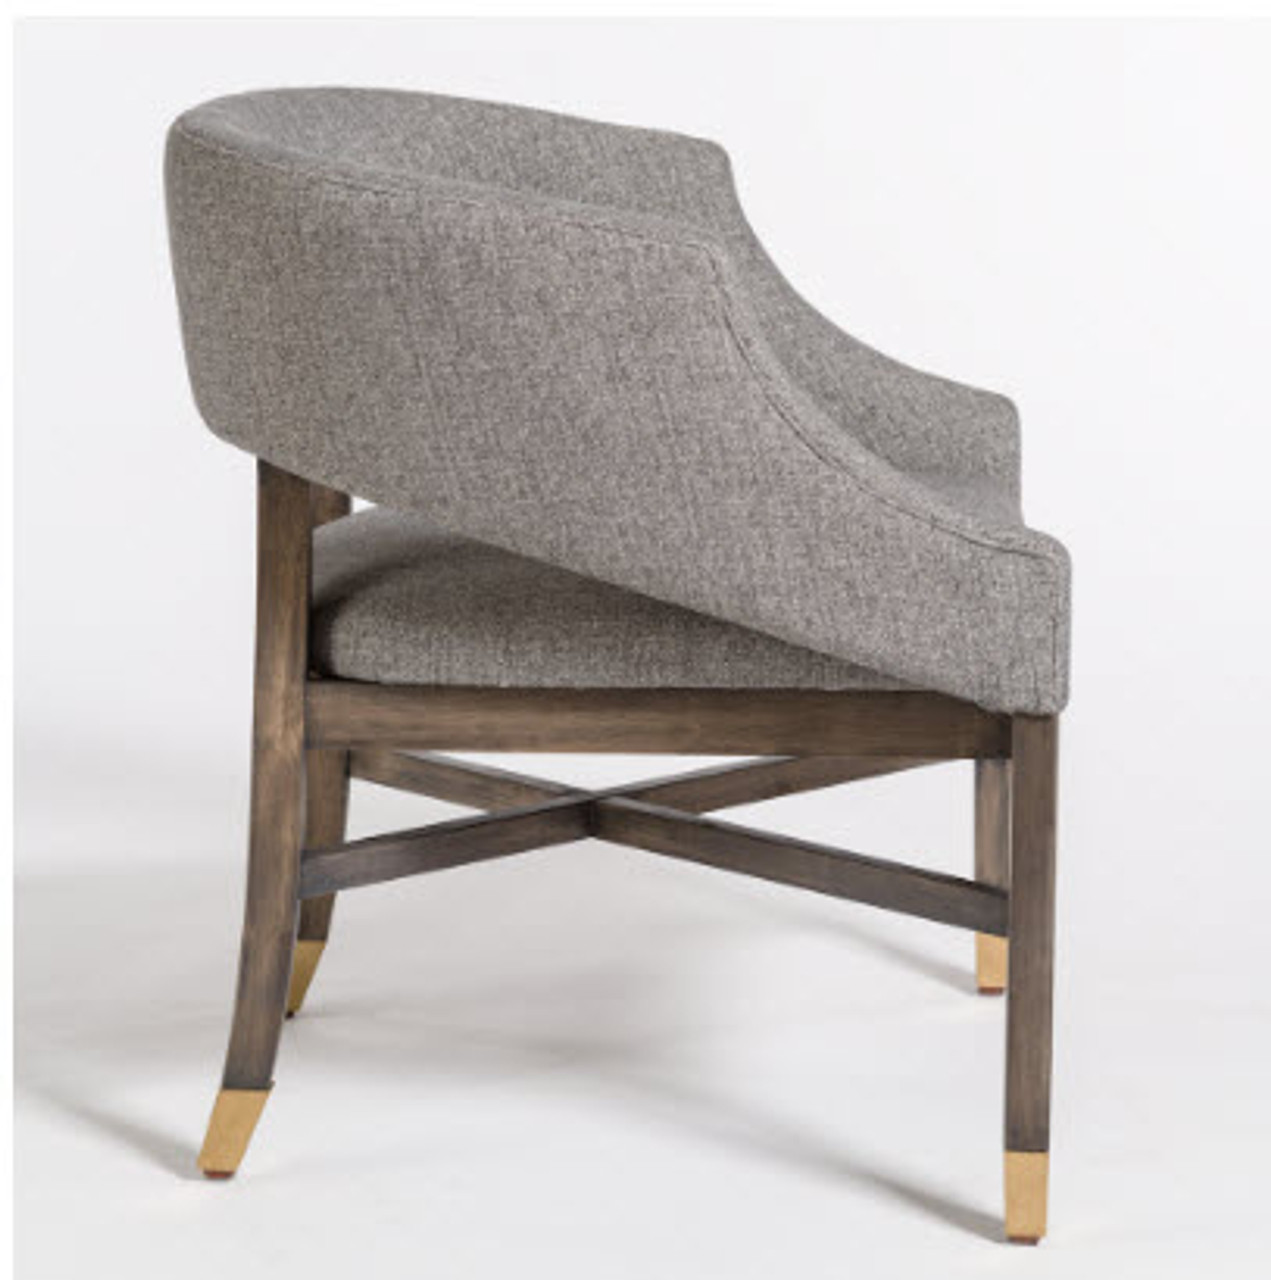 Wondrous William Modern Side Chair Lamtechconsult Wood Chair Design Ideas Lamtechconsultcom